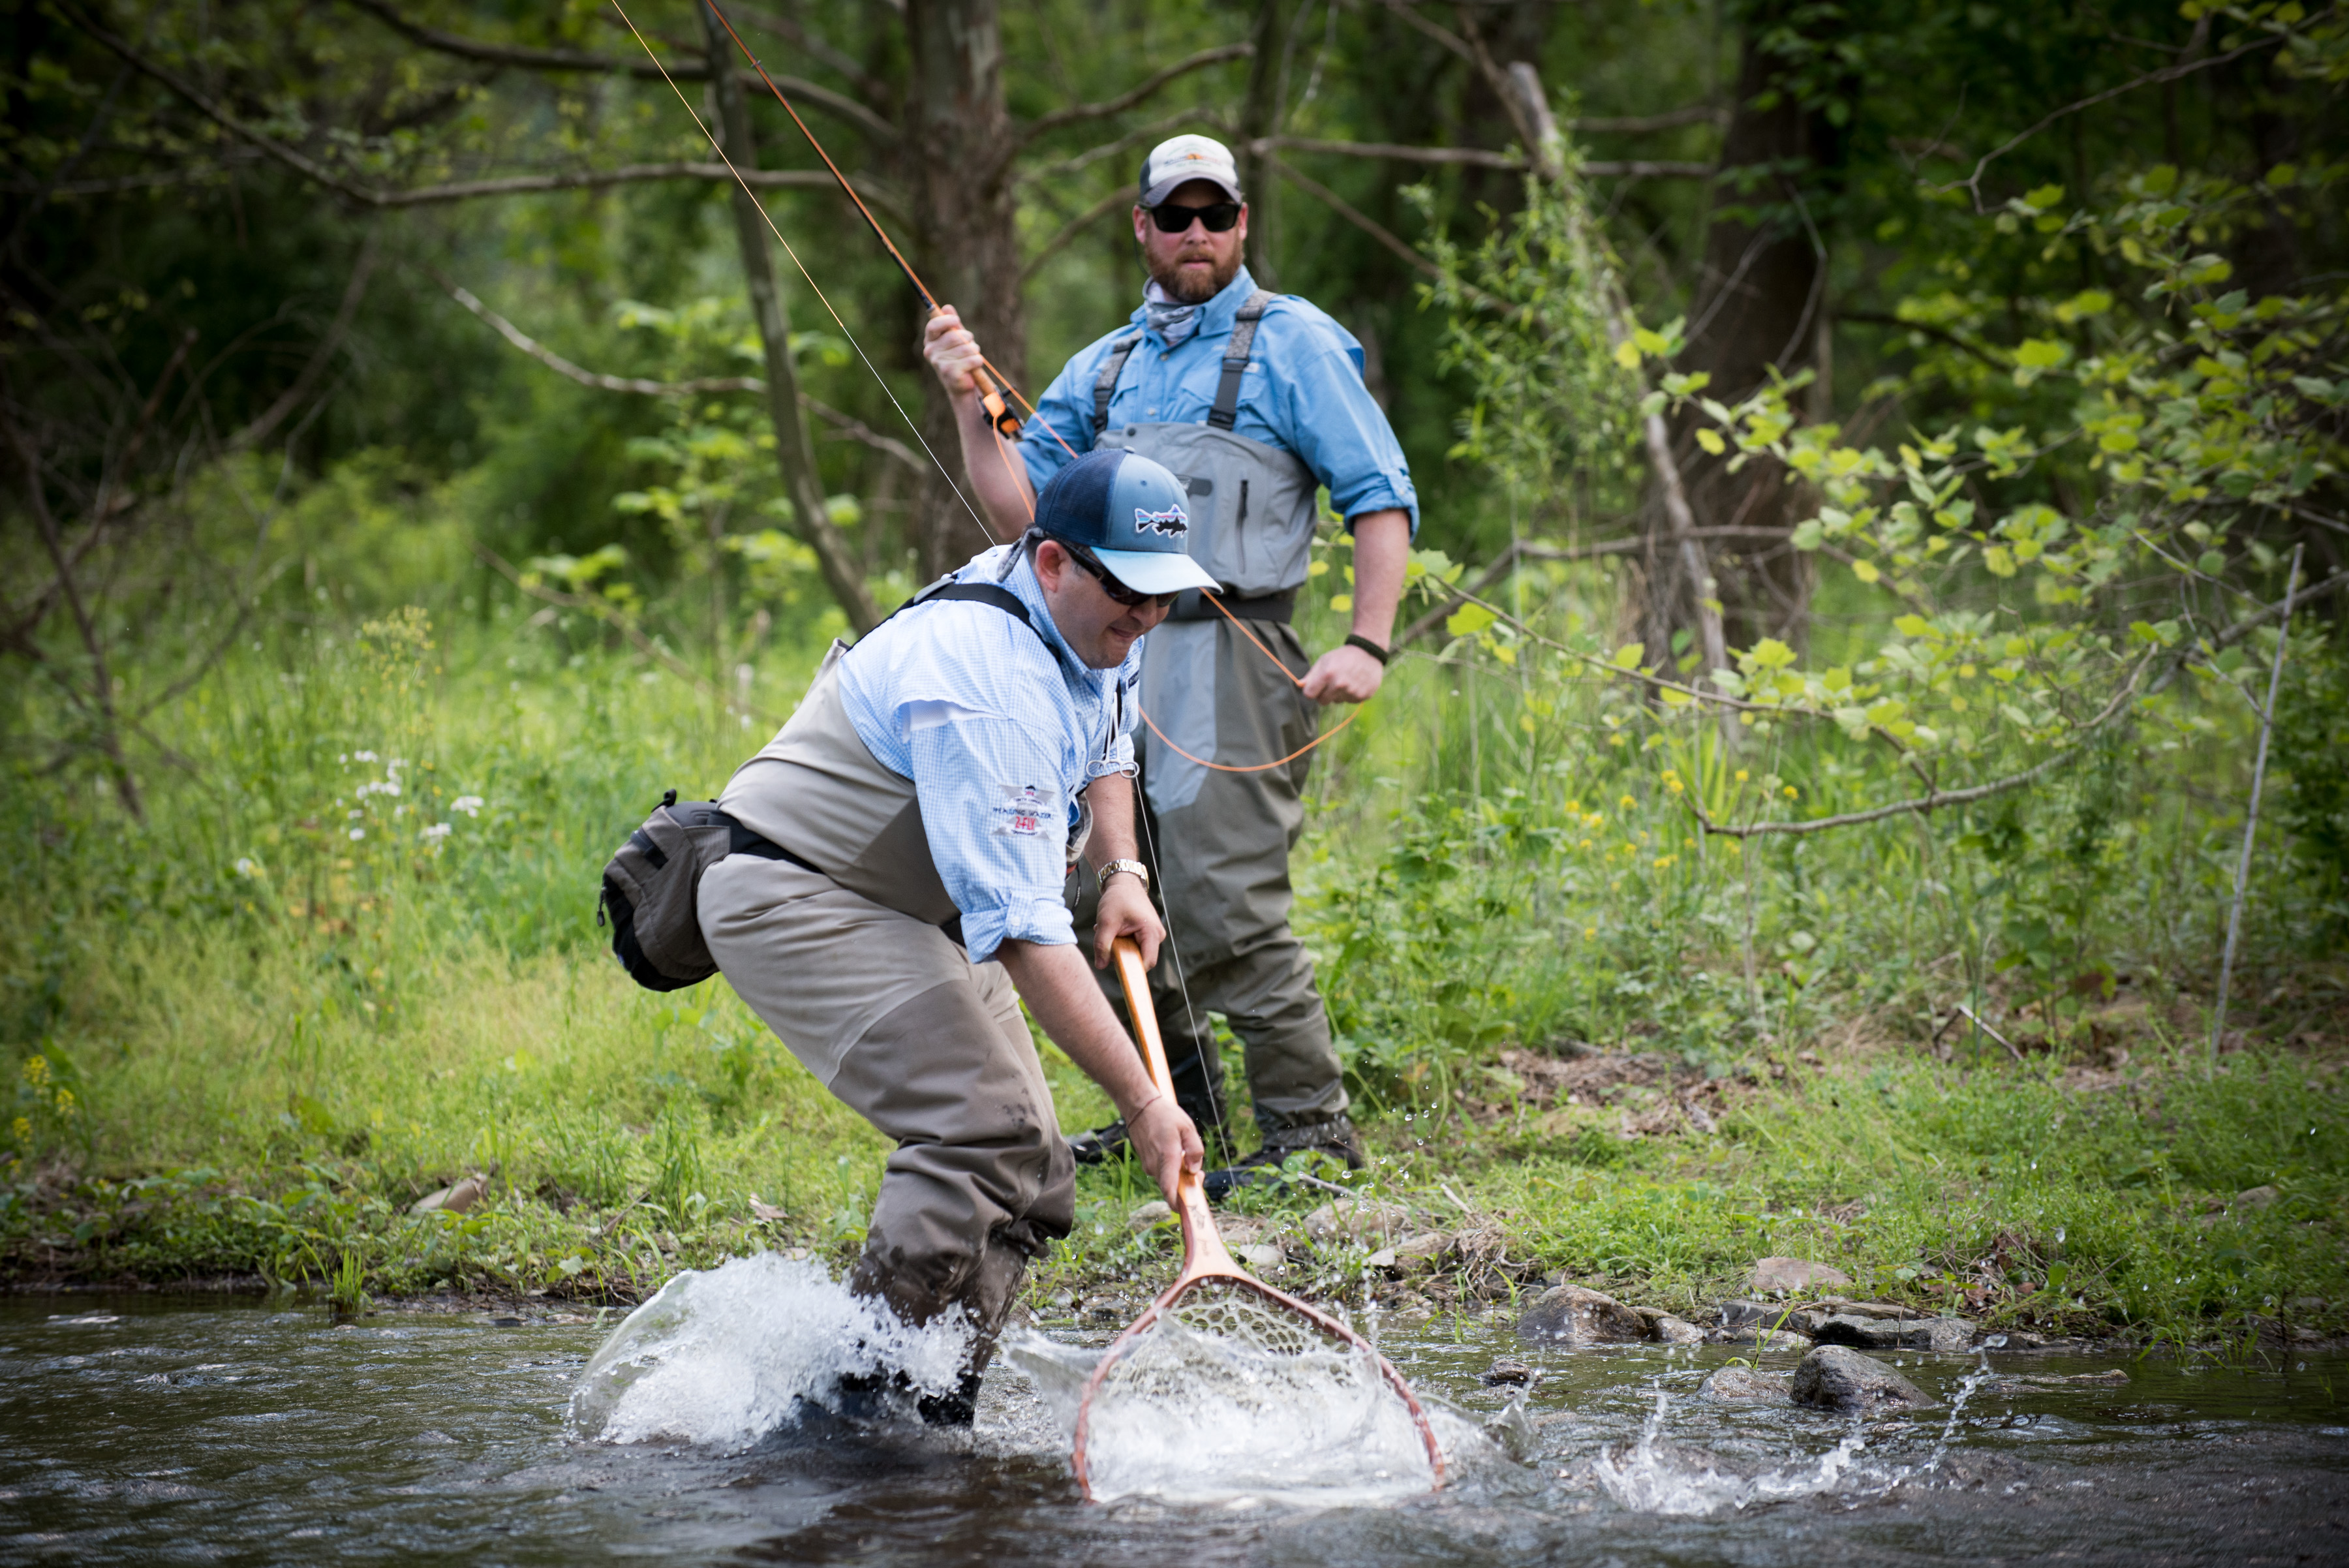 Meet the Veteran Competitors for the 12th Annual Project Healing Waters Fly Fishing 2-Fly Tournament